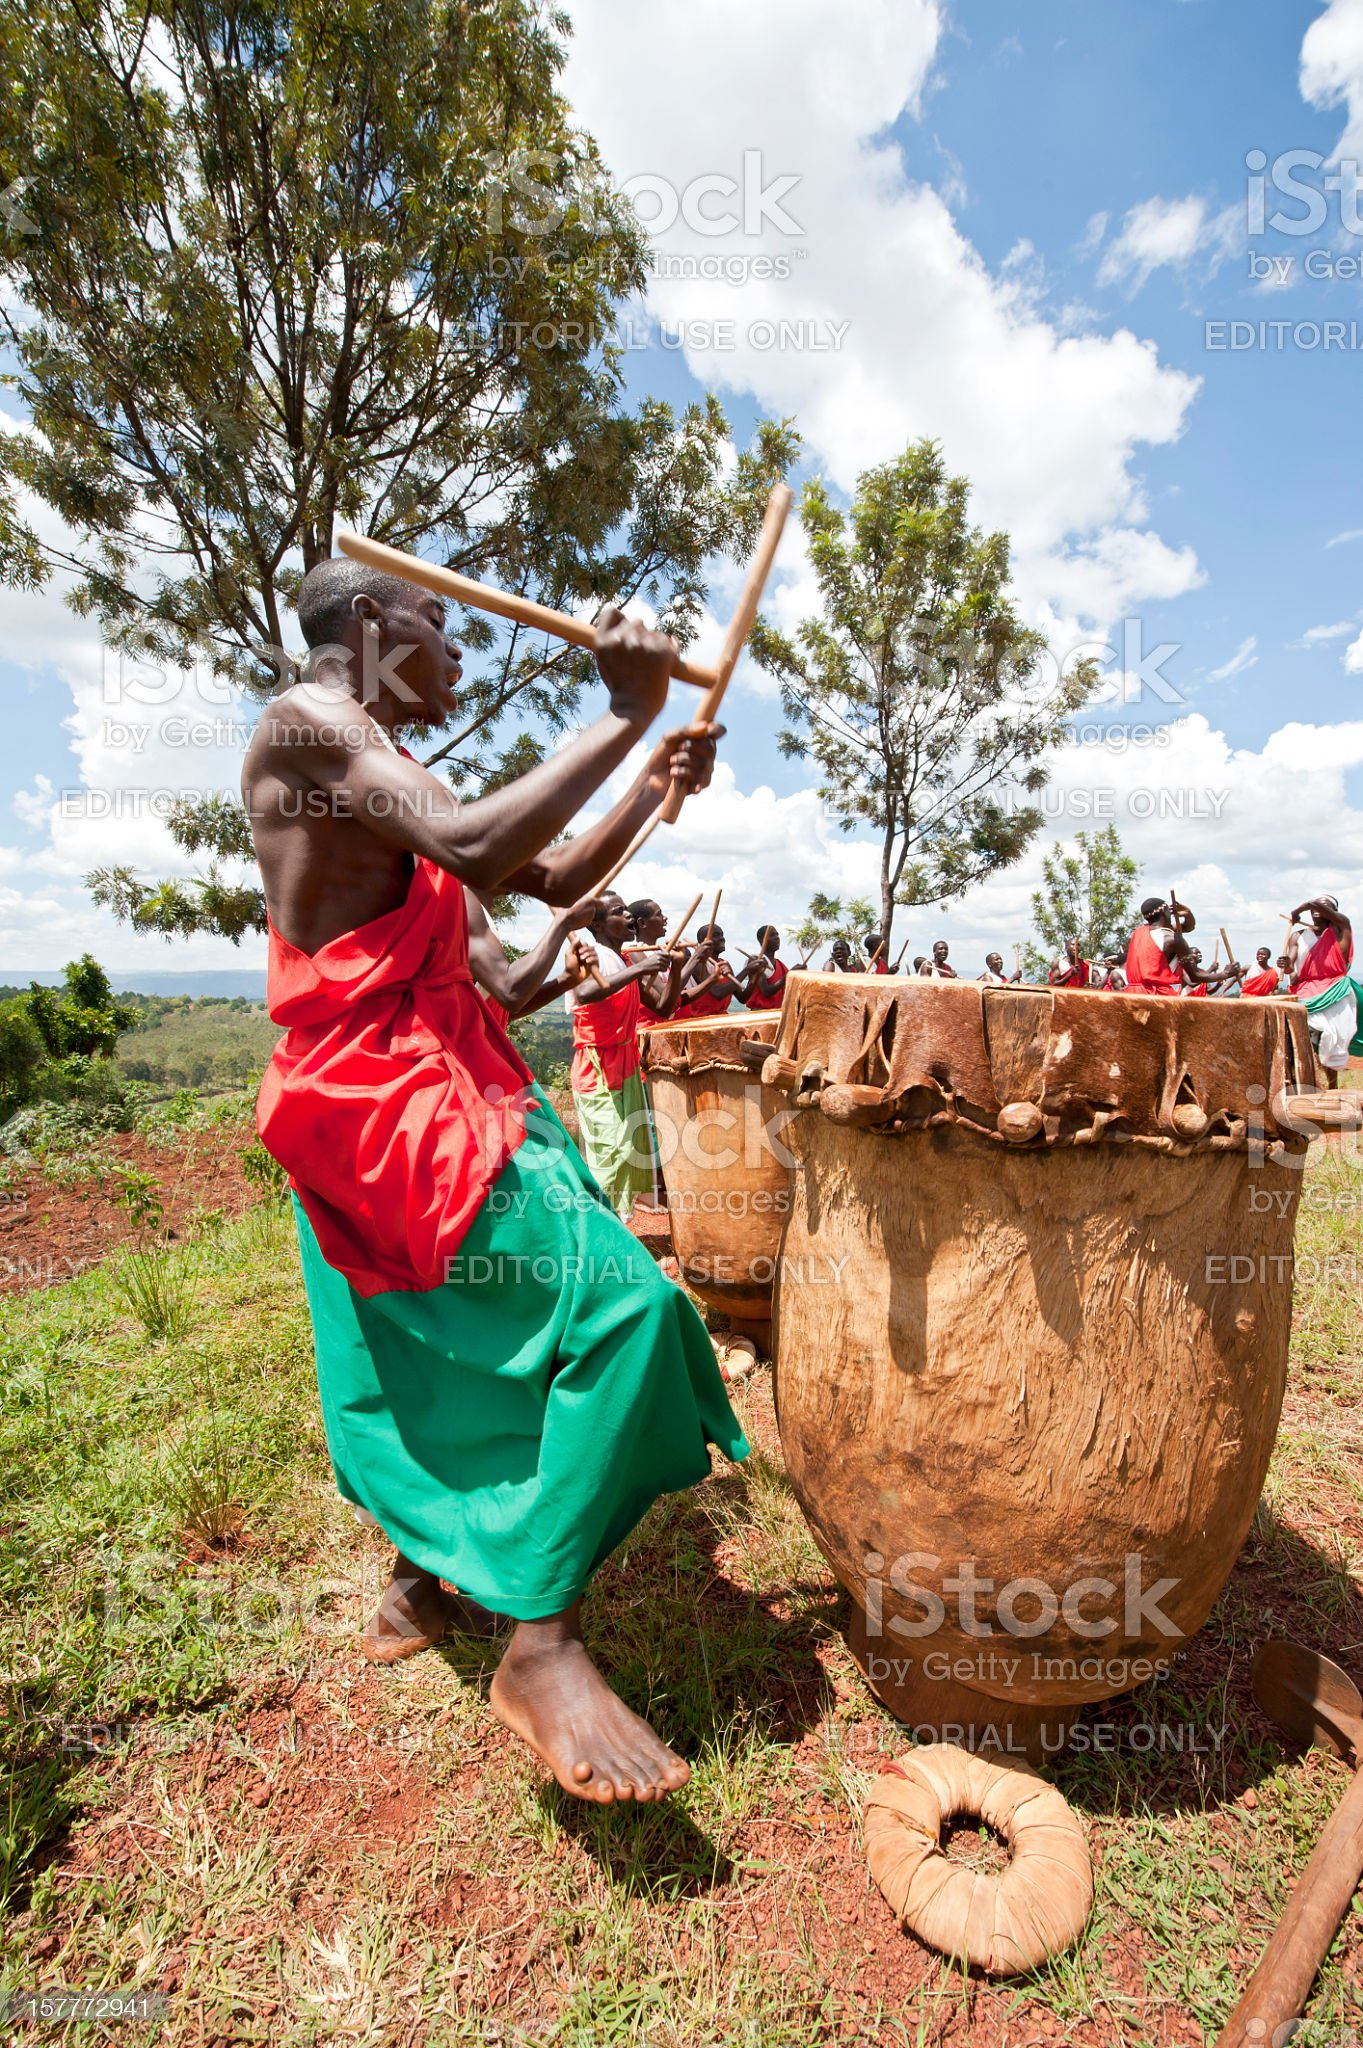 Drummers and Dancers of Gitega in Burundi, Africa royalty-free stock photo